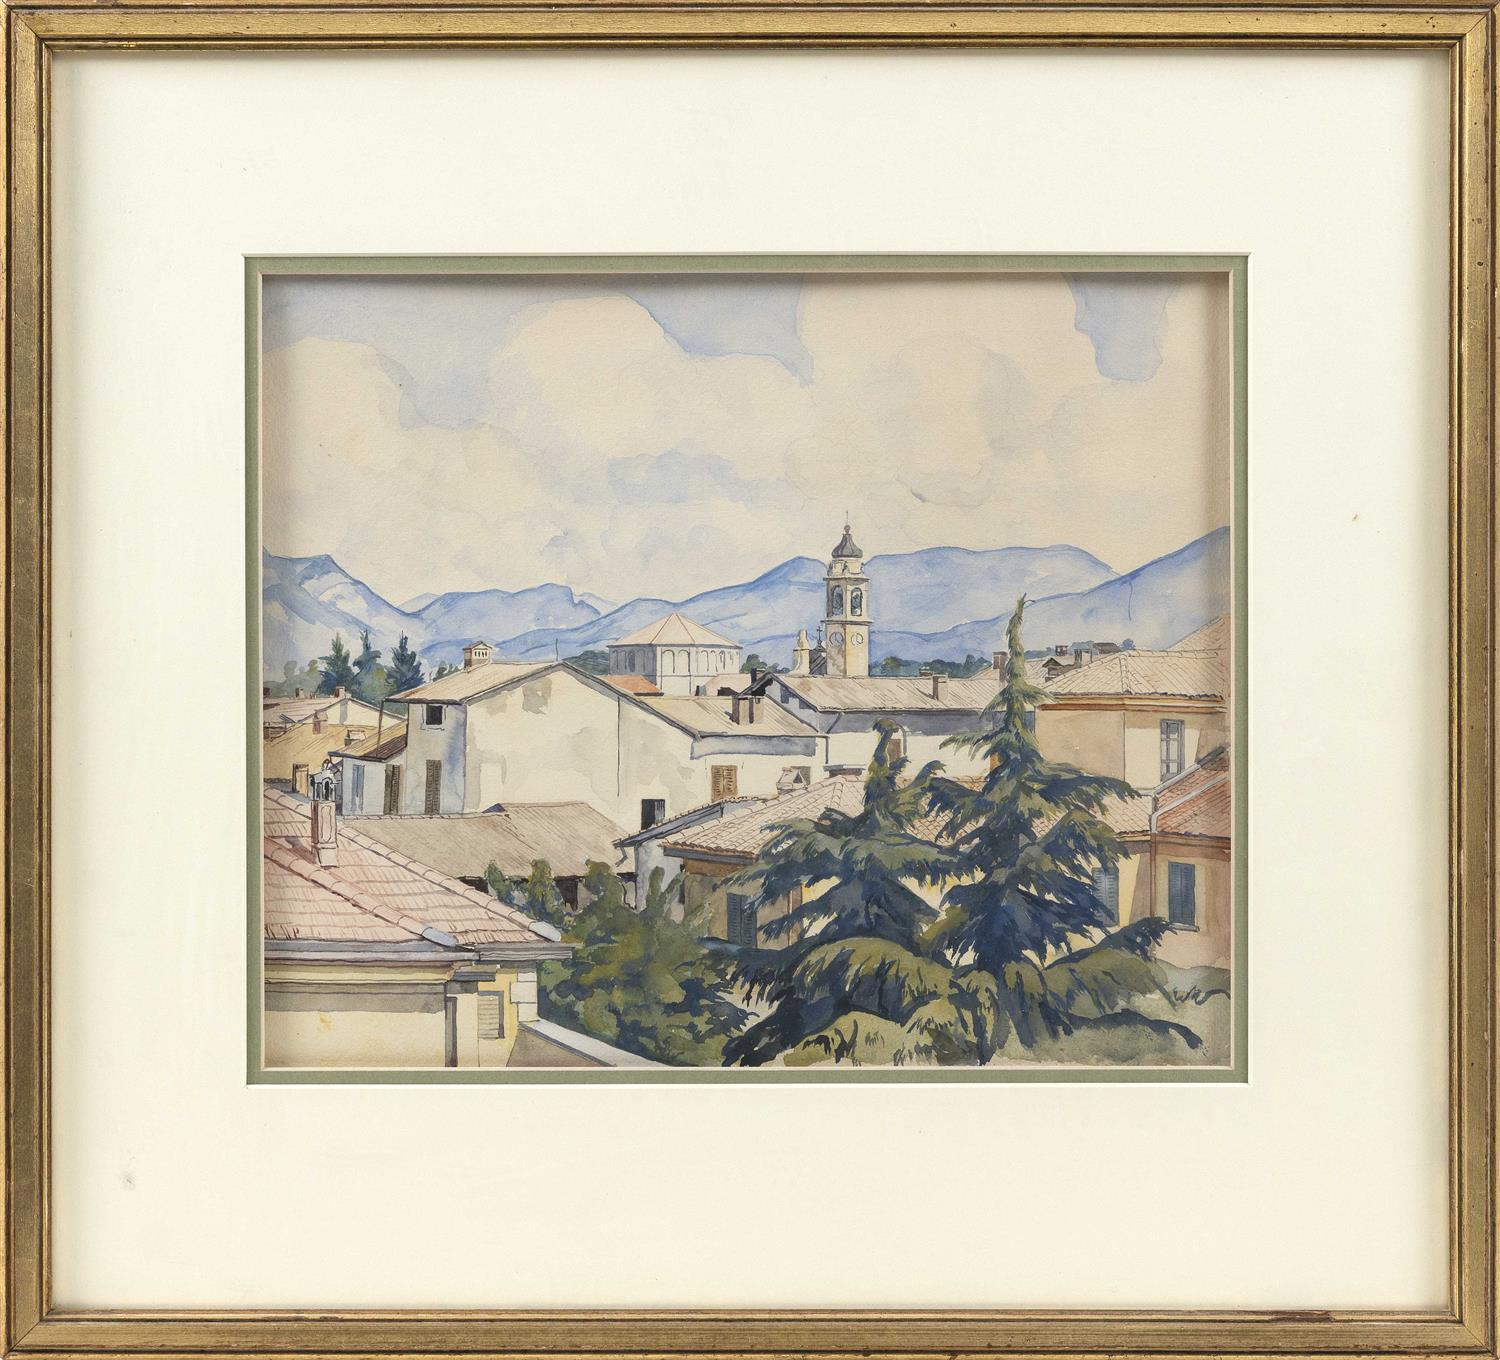 """LUIGI LUCIONI, New Jersey/New York/Vermont/Italy, 1900-1988, """"Italian Roofs""""., Watercolor on paper, 12"""" x 14"""" sight. Framed 20"""" x 22""""."""